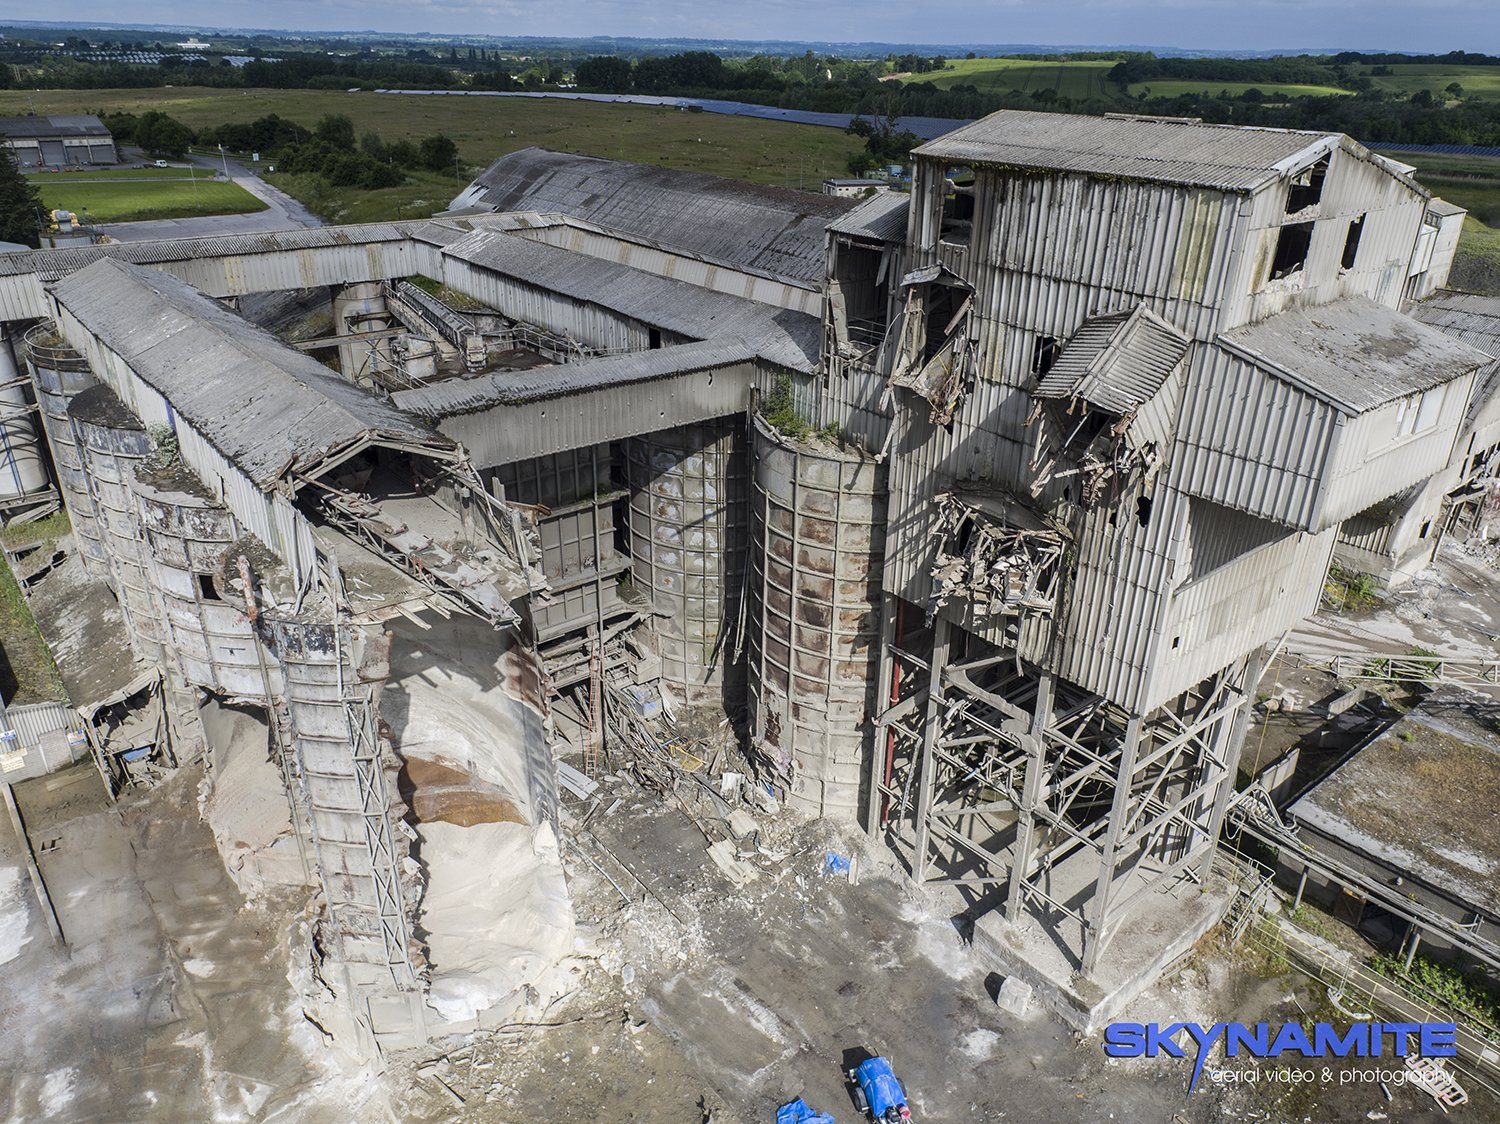 Aerial demolition picture, Westbury cement works